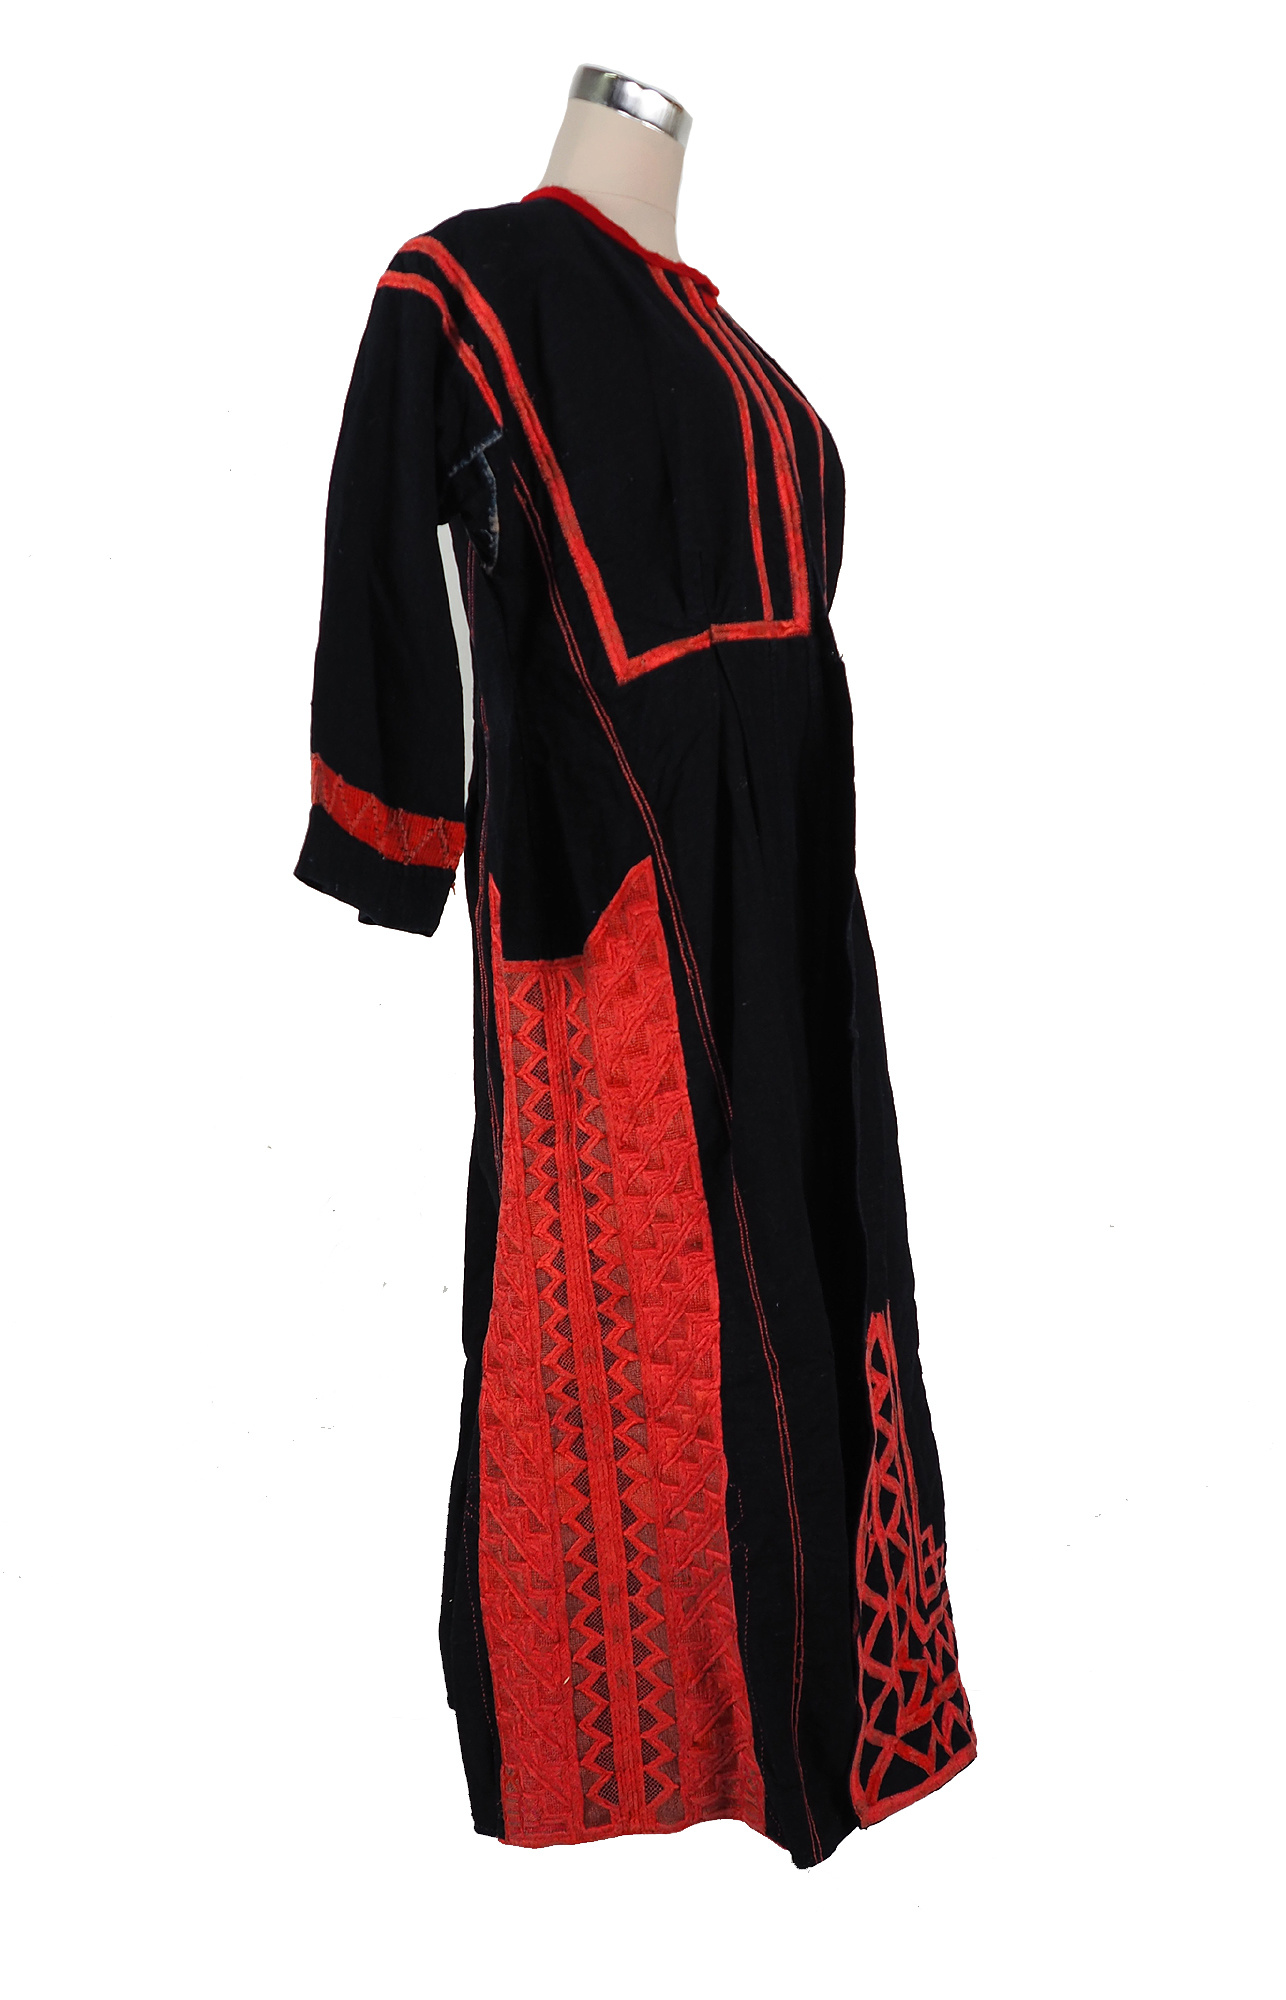 Palestinian girls embroidered ethnic dress No:20